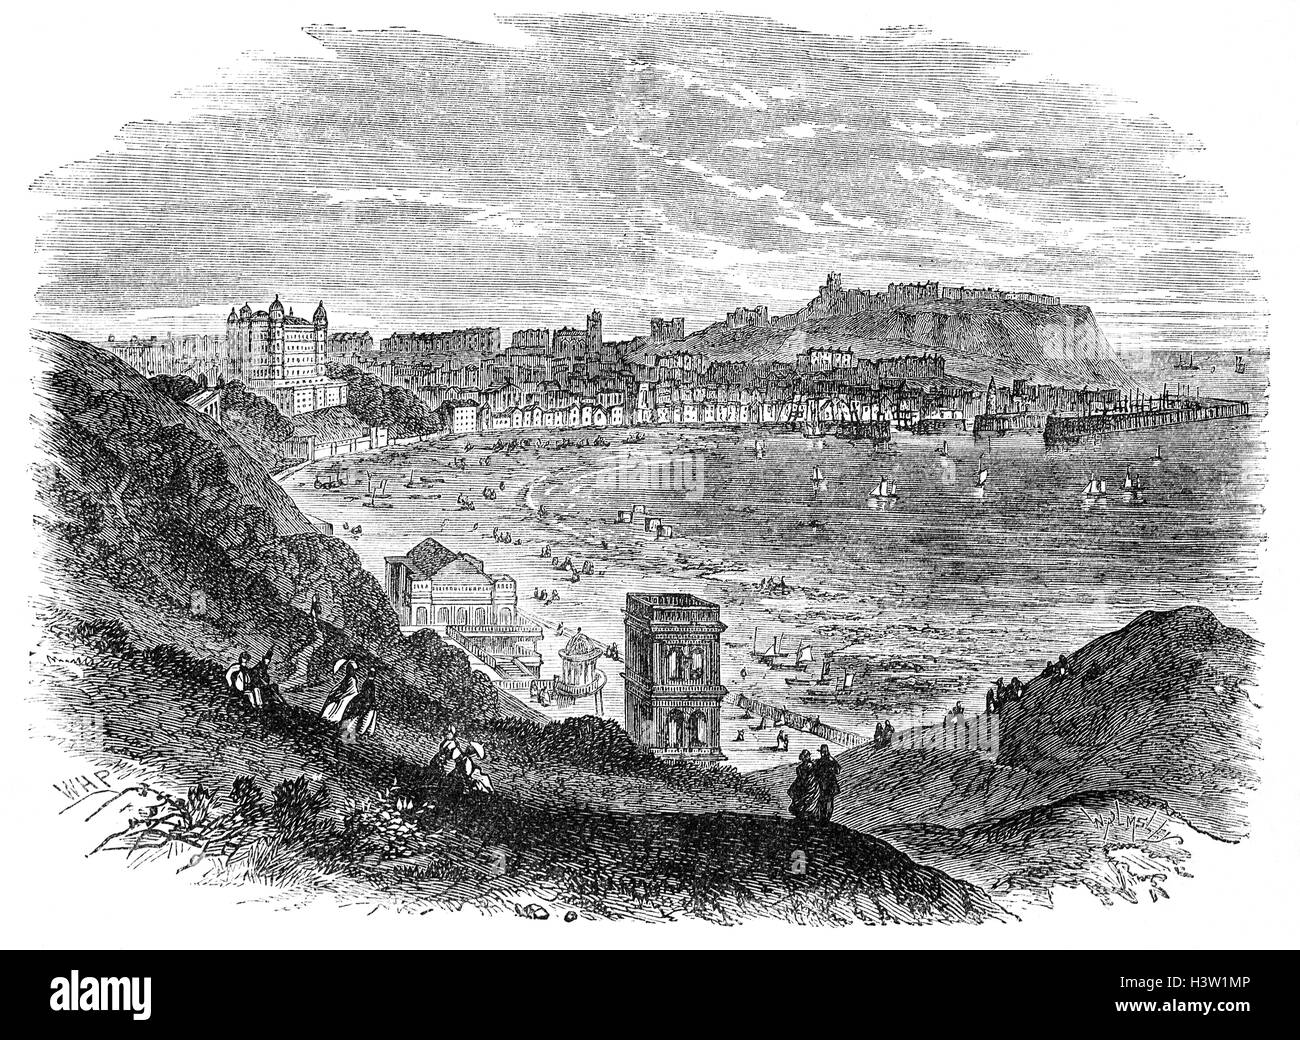 19th Century view of Scarborough, a town on the North Sea coast of North Yorkshire, England. Historically part of - Stock Image